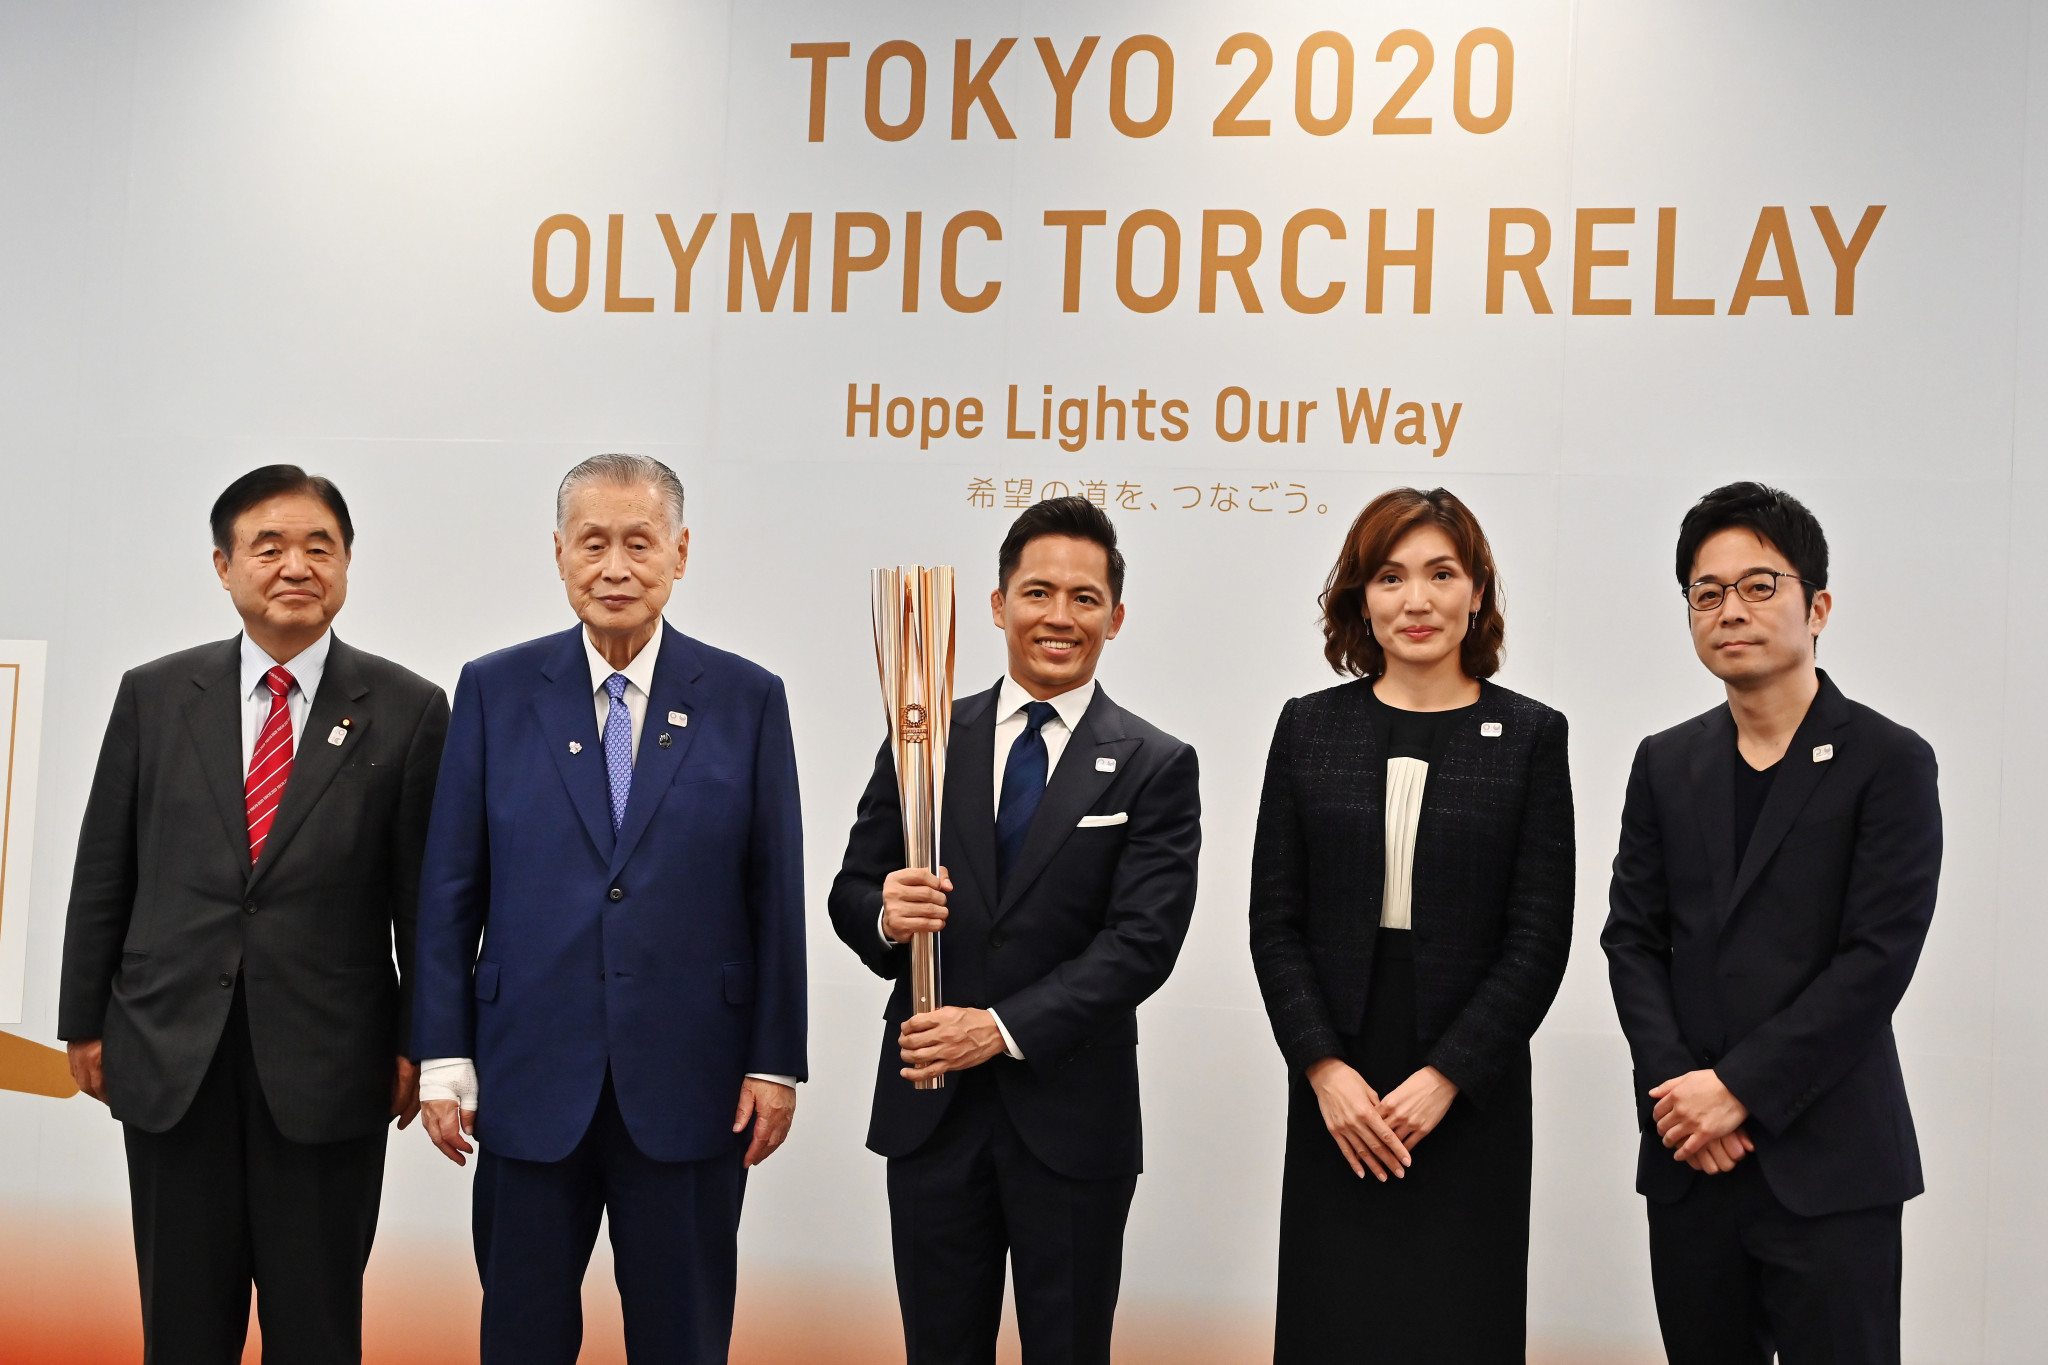 The Tokyo 2020 Olympic Torch Relay is expected to pass through the Fukushima Daiichi Nuclear Power Plant in Ōkuma next March ©Getty Images